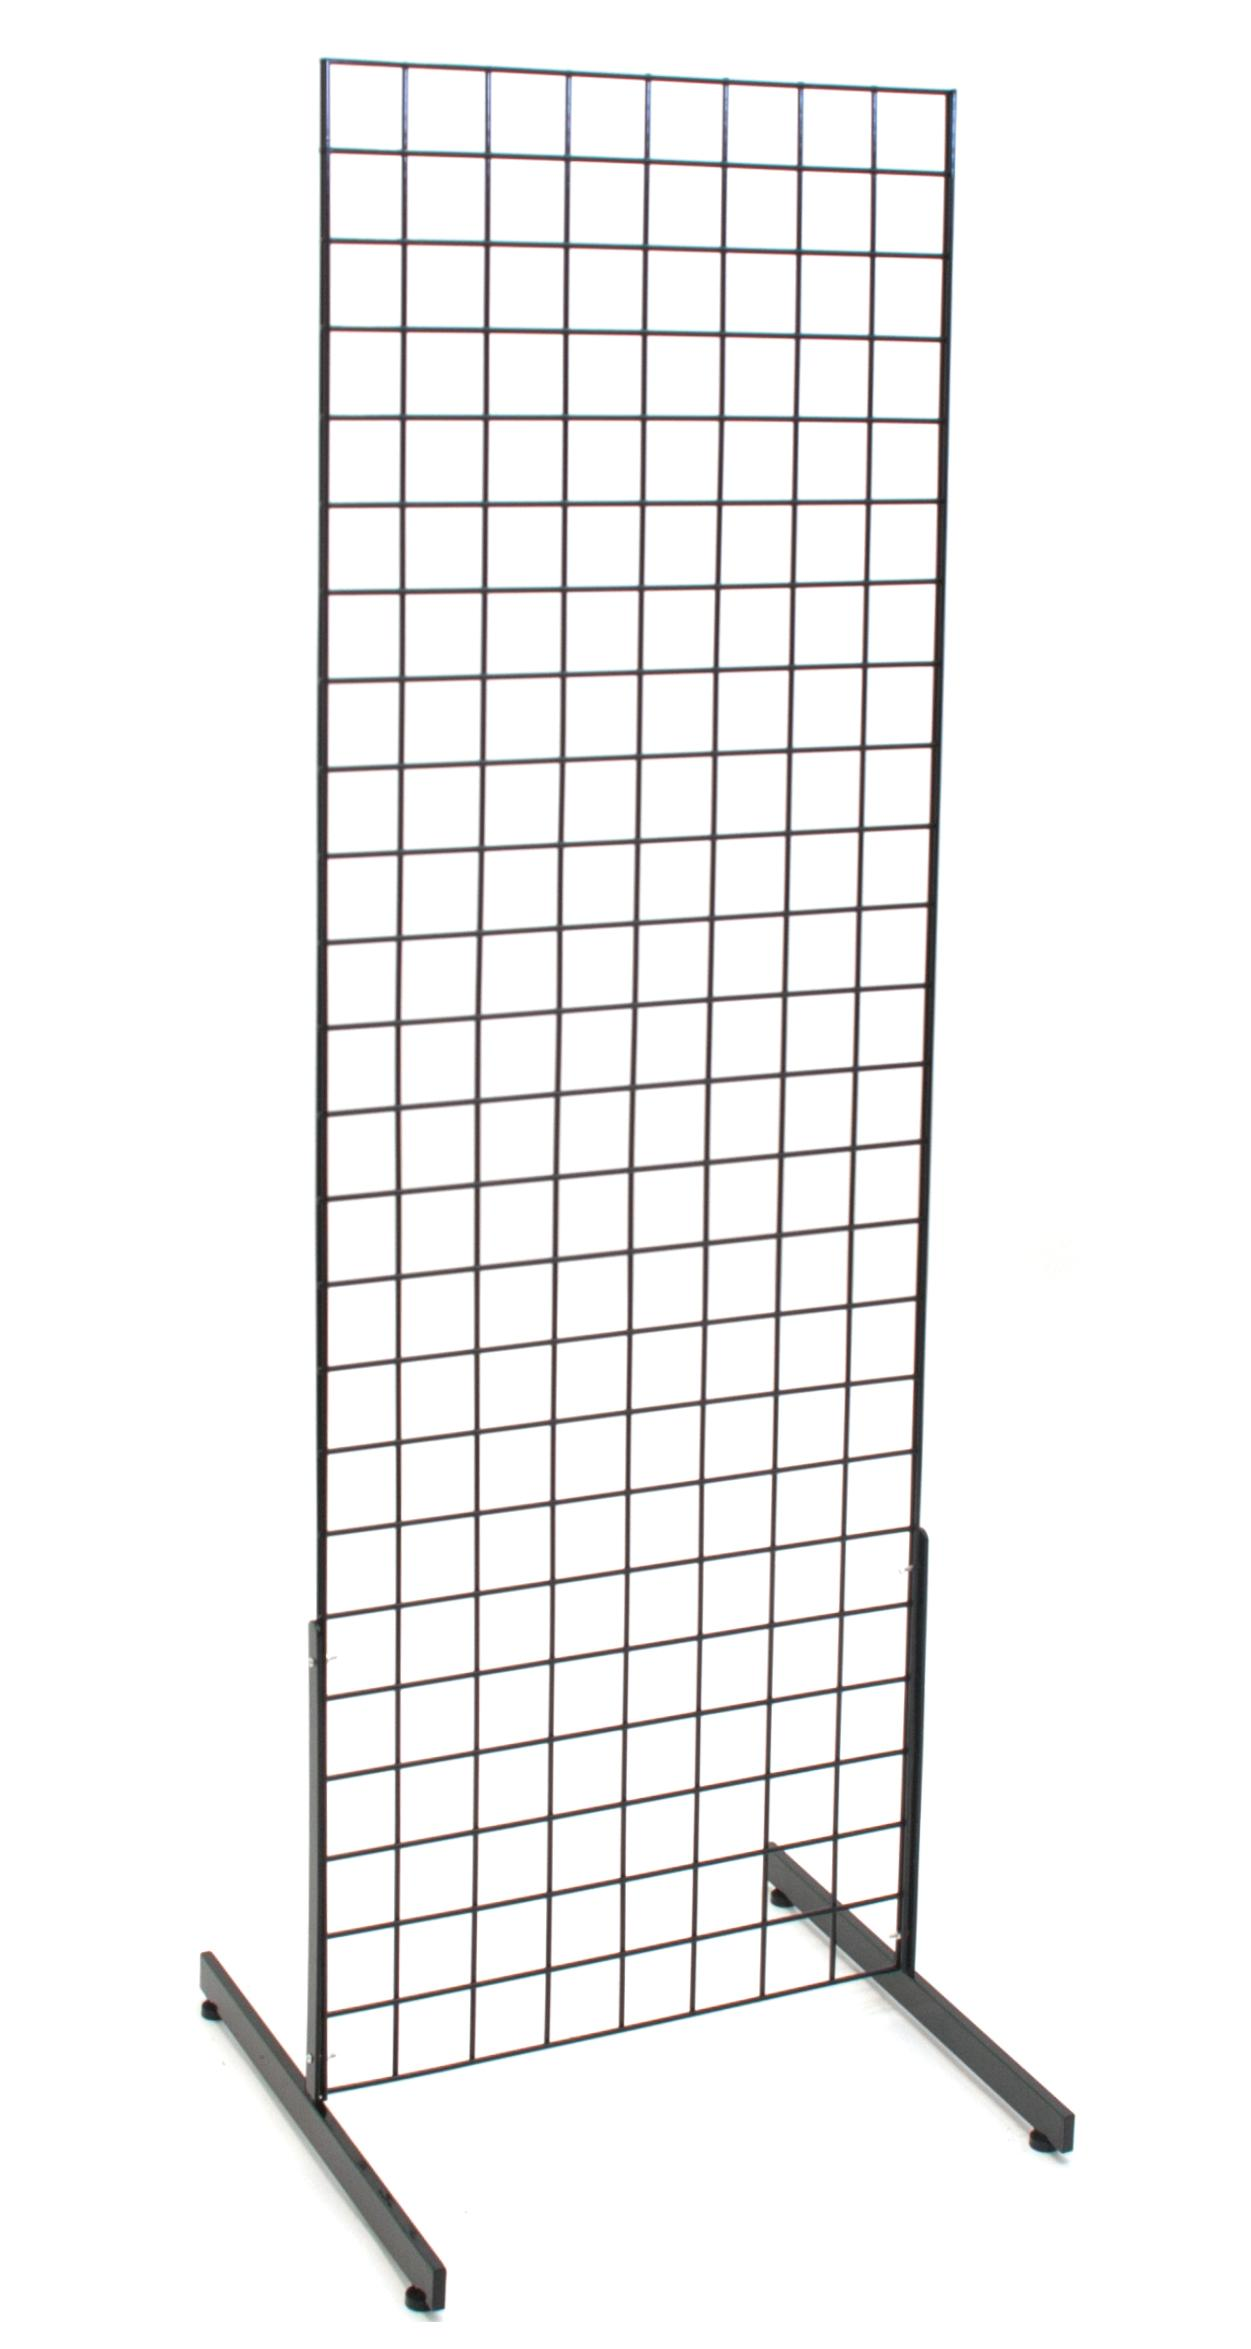 Pack of 25 New Retails Black 12 Metal Grid Wall Shelf Bracket